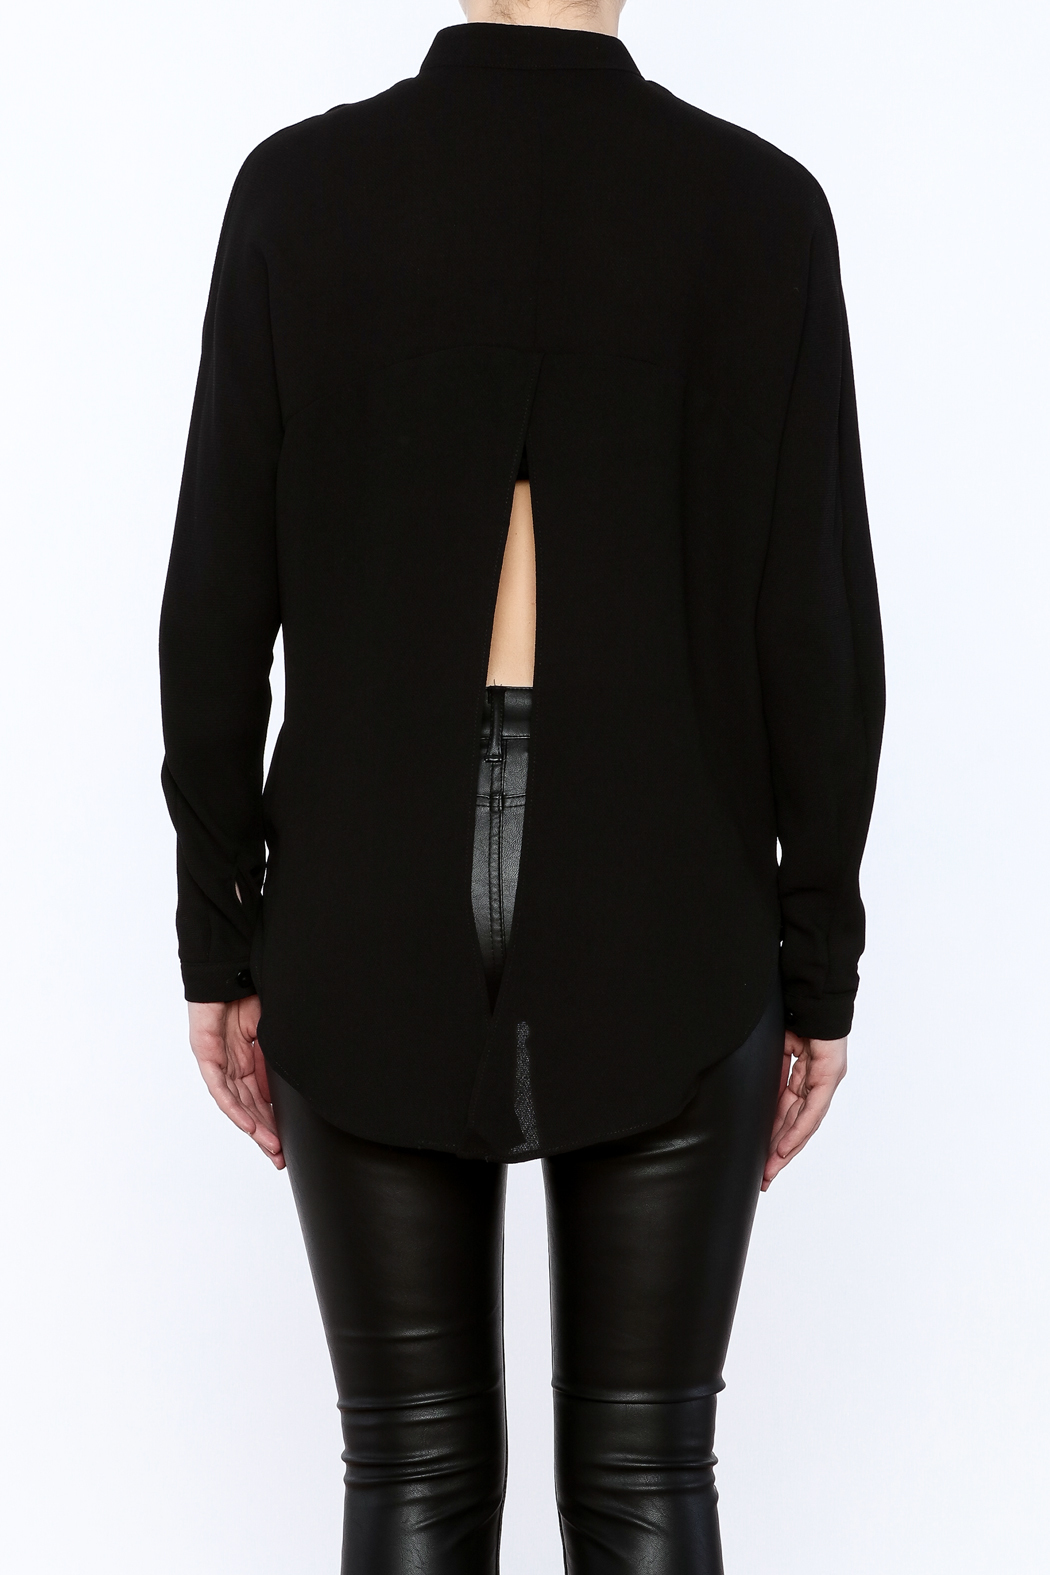 Bishop + Young Open Back Blouse - Back Cropped Image